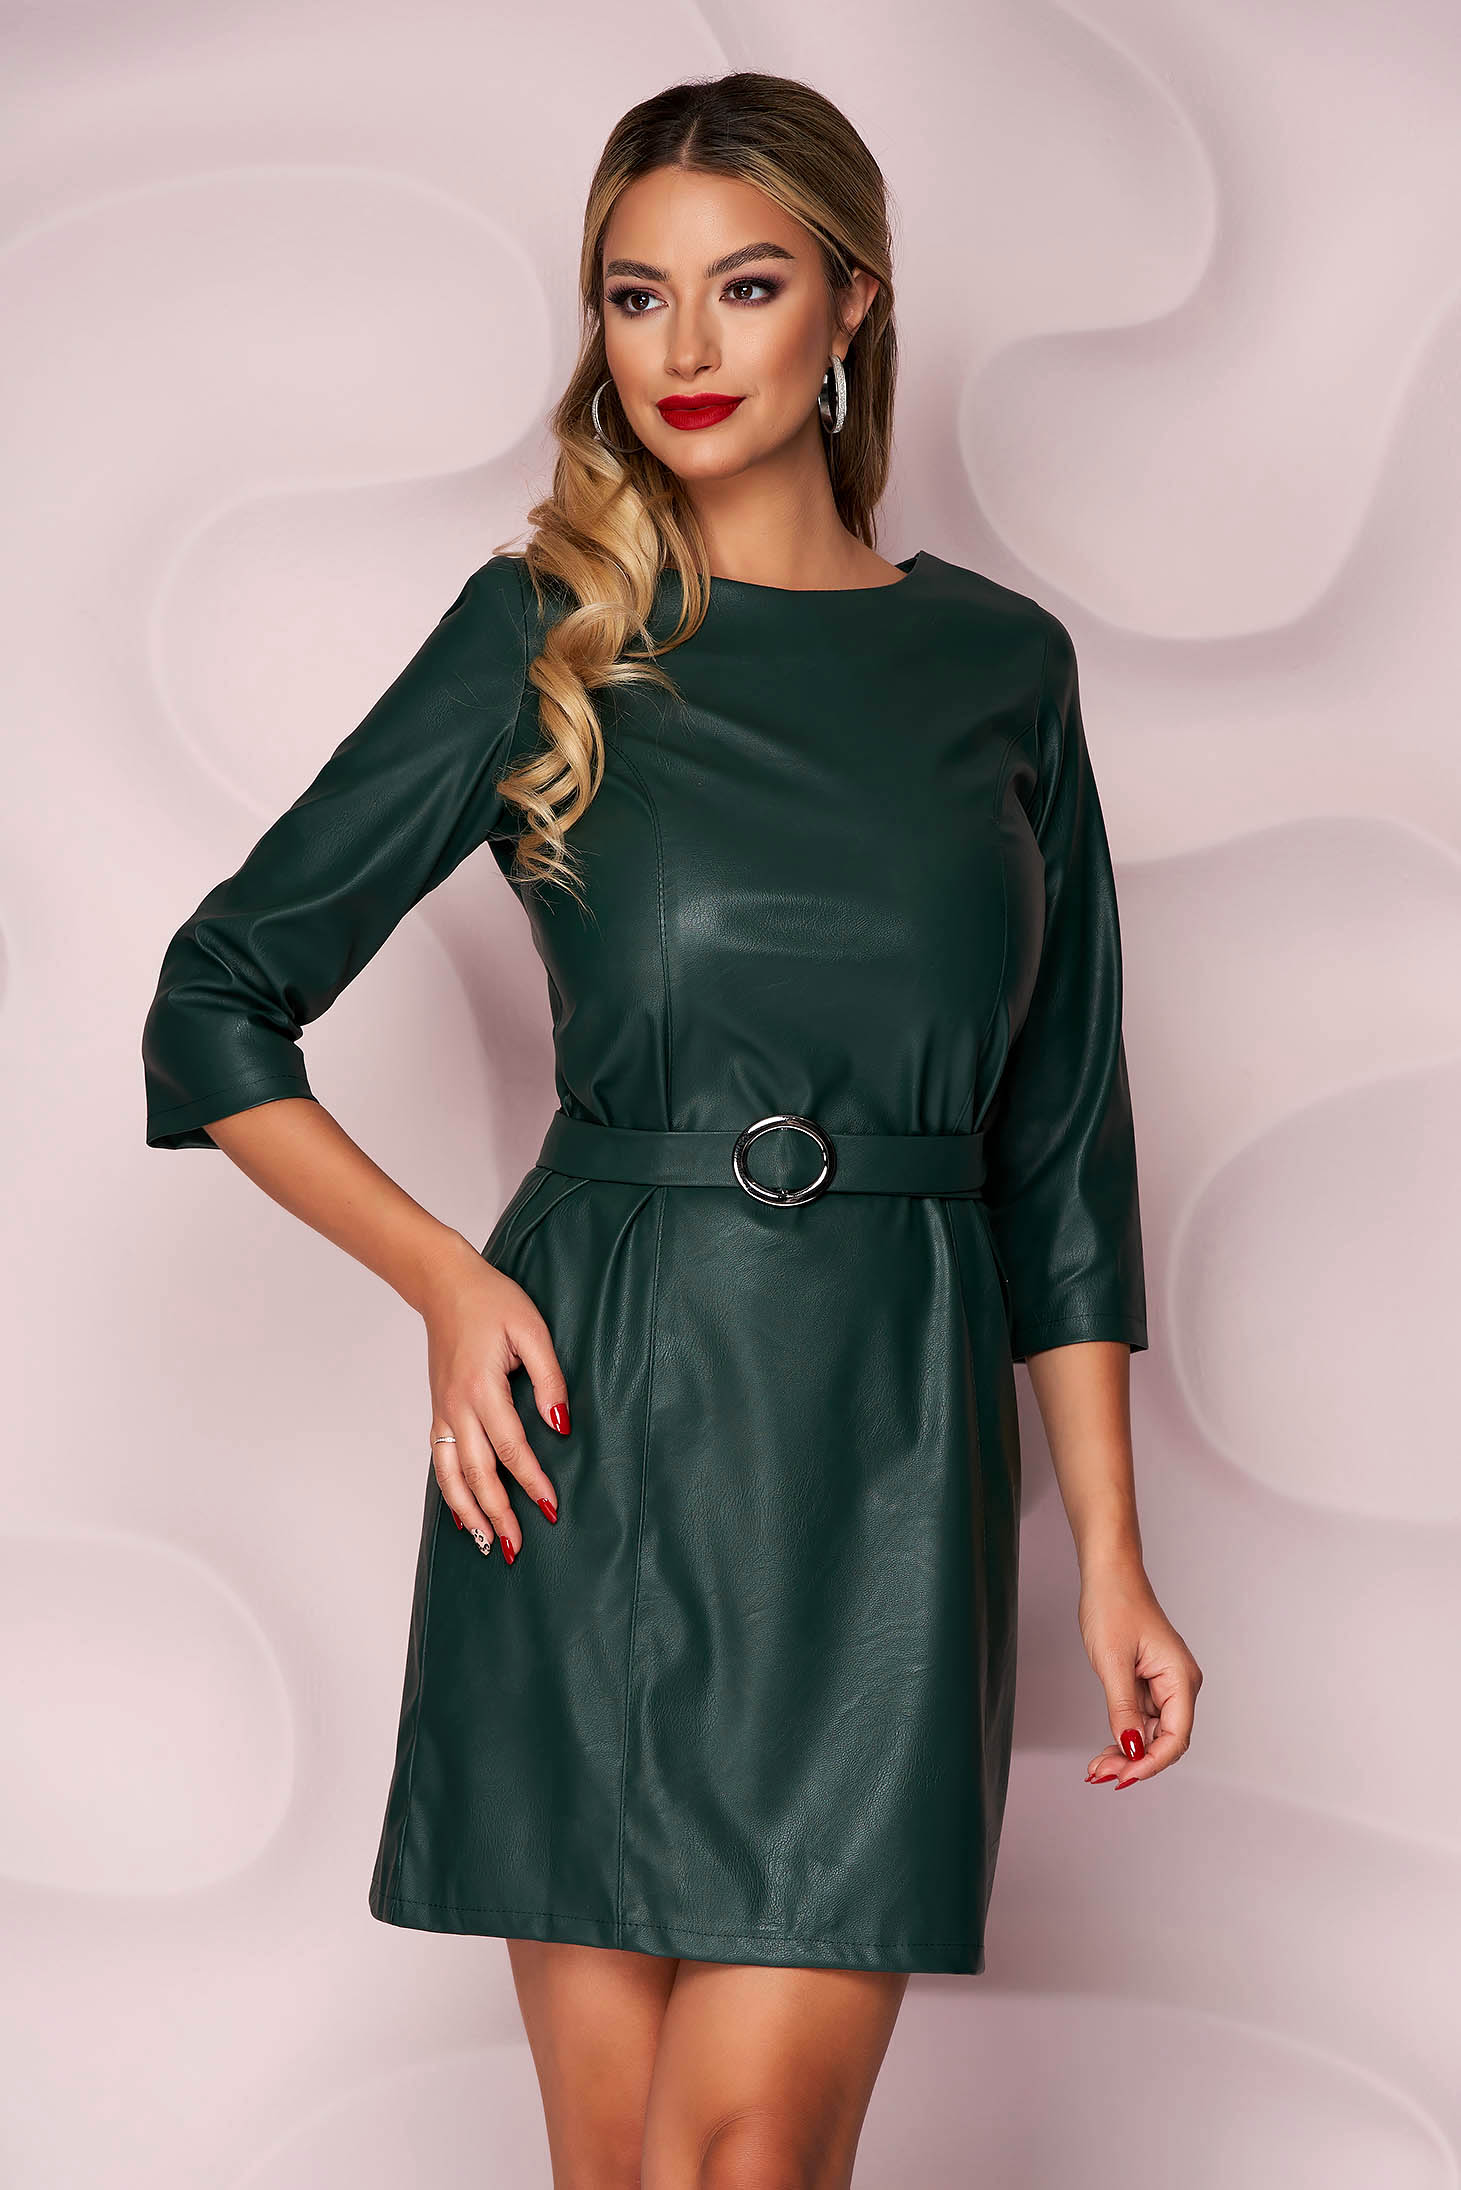 Darkgreen dress casual straight from ecological leather faux leather belt